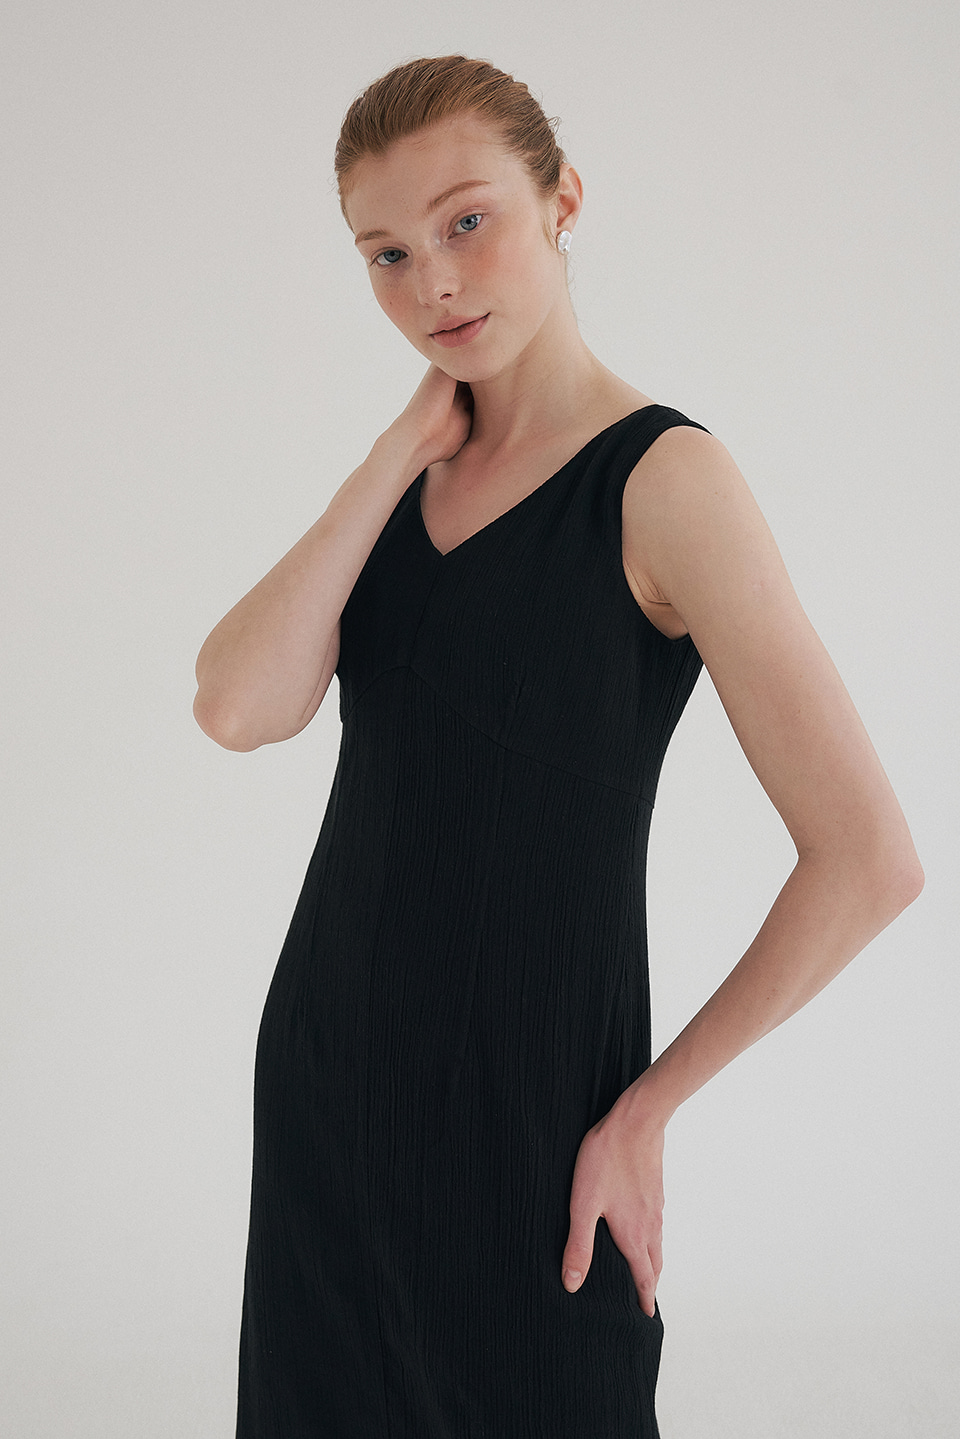 cotton wrinkled v dress (black)